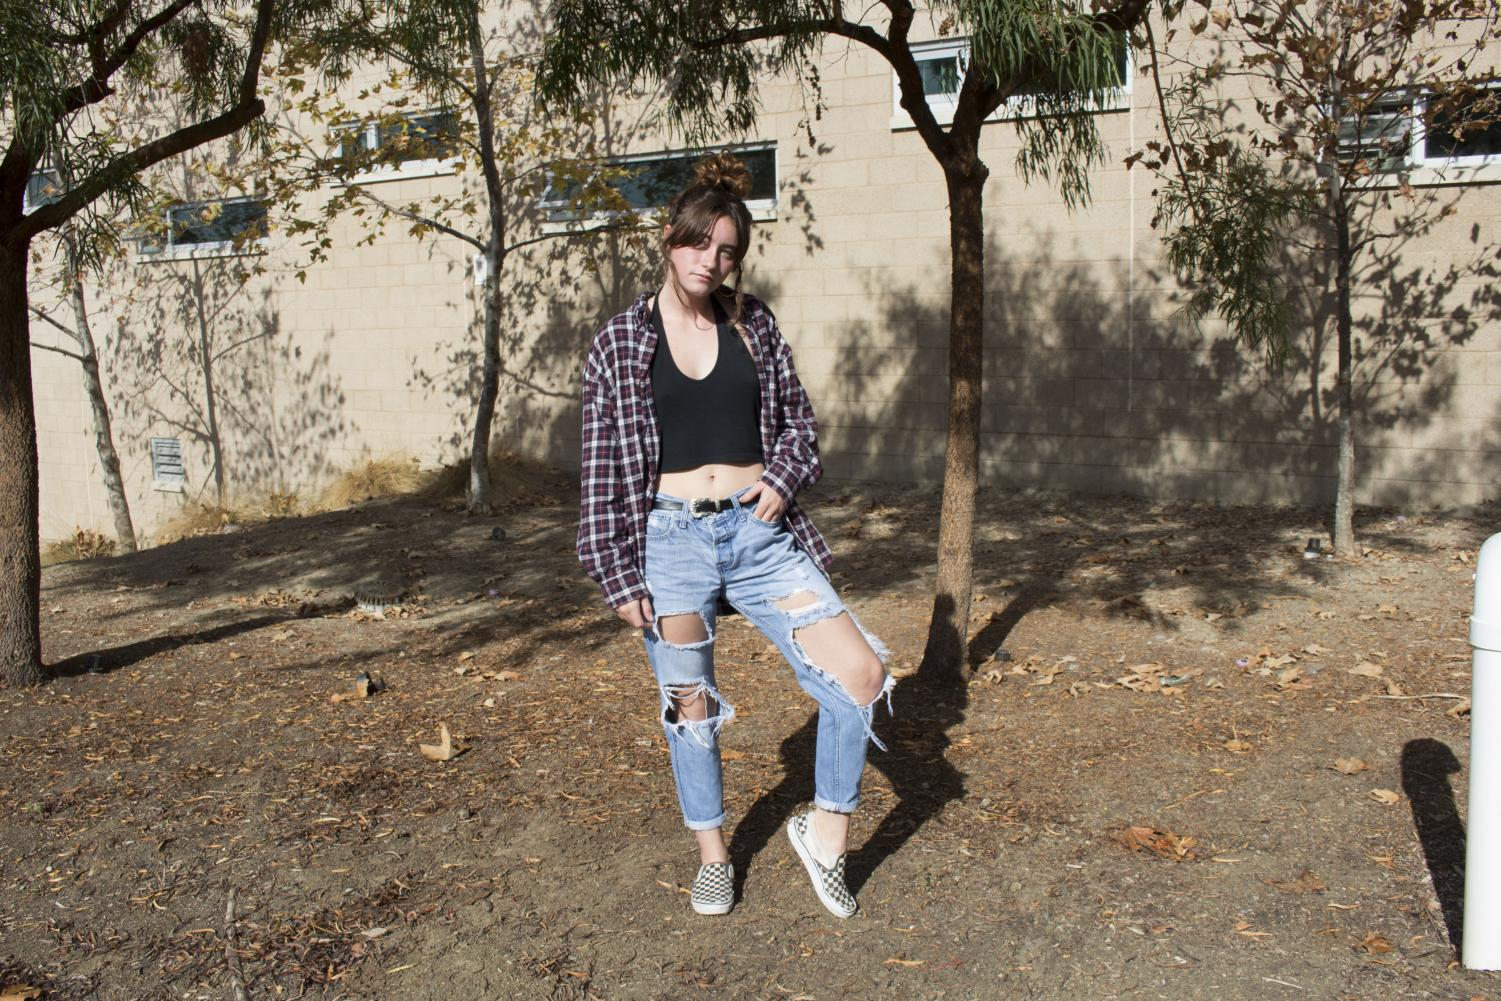 Junior+Madisyn+Goerlitz+rocks+ripped+boyfriend+jeans%2C+a+black+halter+crop+top%2C+a+loose+flannel%2C+and+tops+the+outfit+off+with+checkered+vans.+%E2%80%9CAlways+look+good+in+case+in+case+you+run+into+a+celebrity%2C%E2%80%9D+Madisyn+advises.